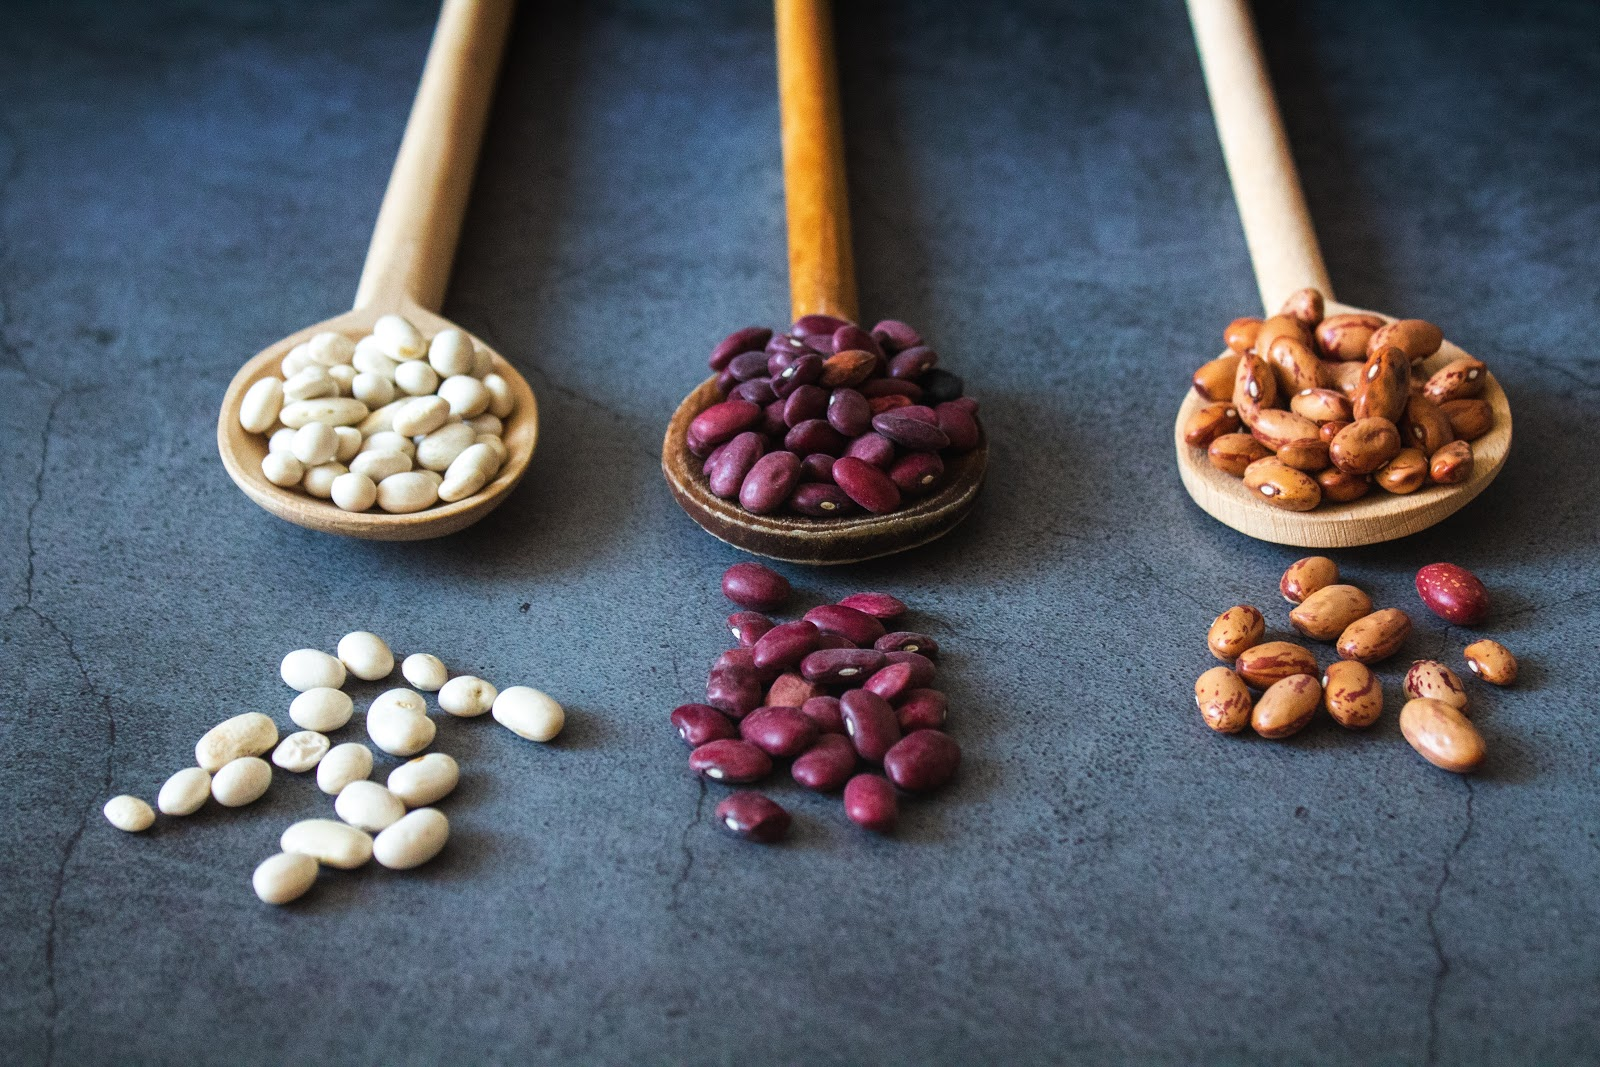 Legumes are rich in resistant starch which ferment to butyrate.